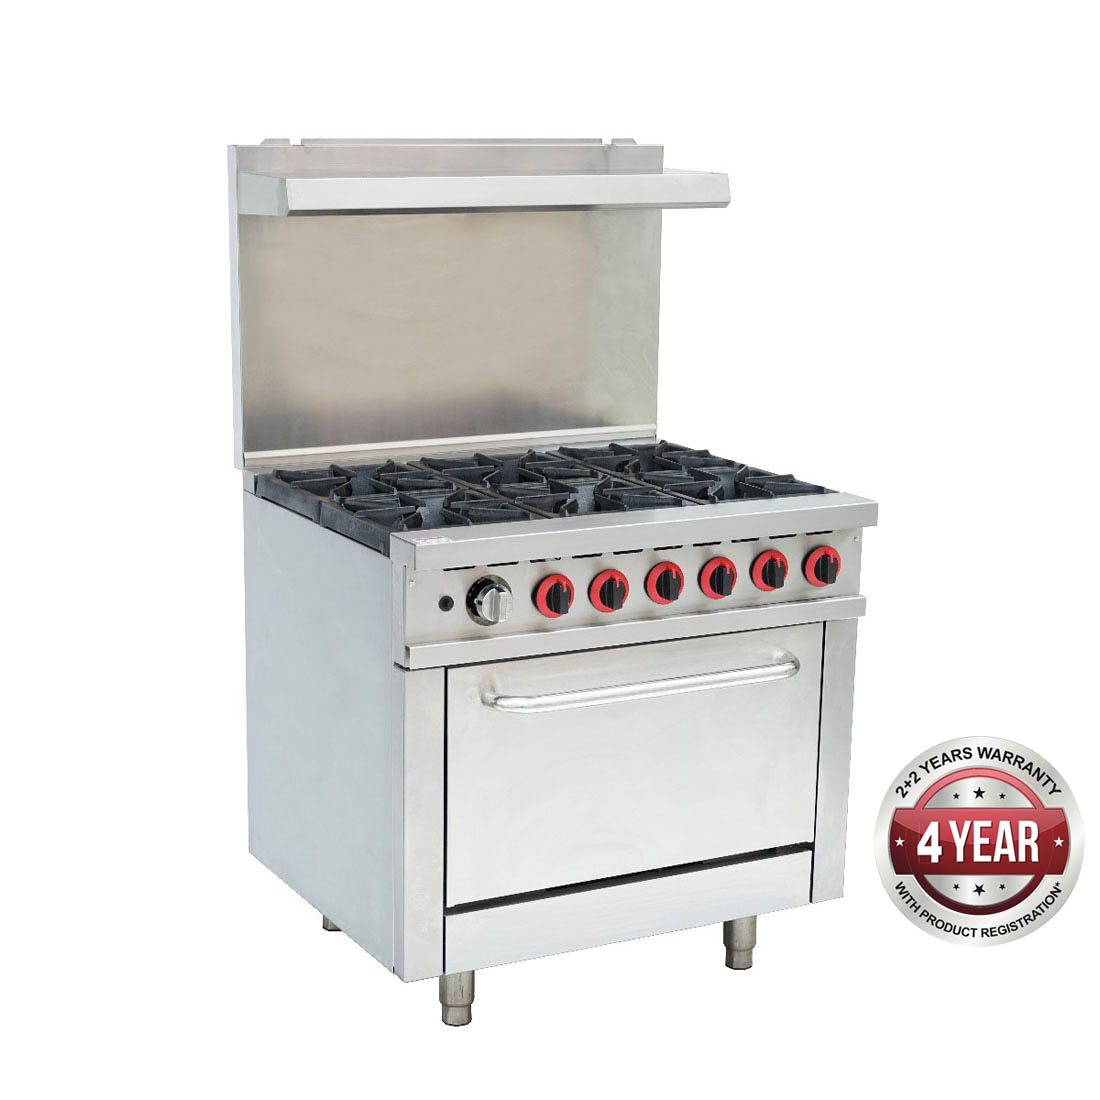 GBS6TLPG Gasmax 6 Burner With Oven Flame Failure